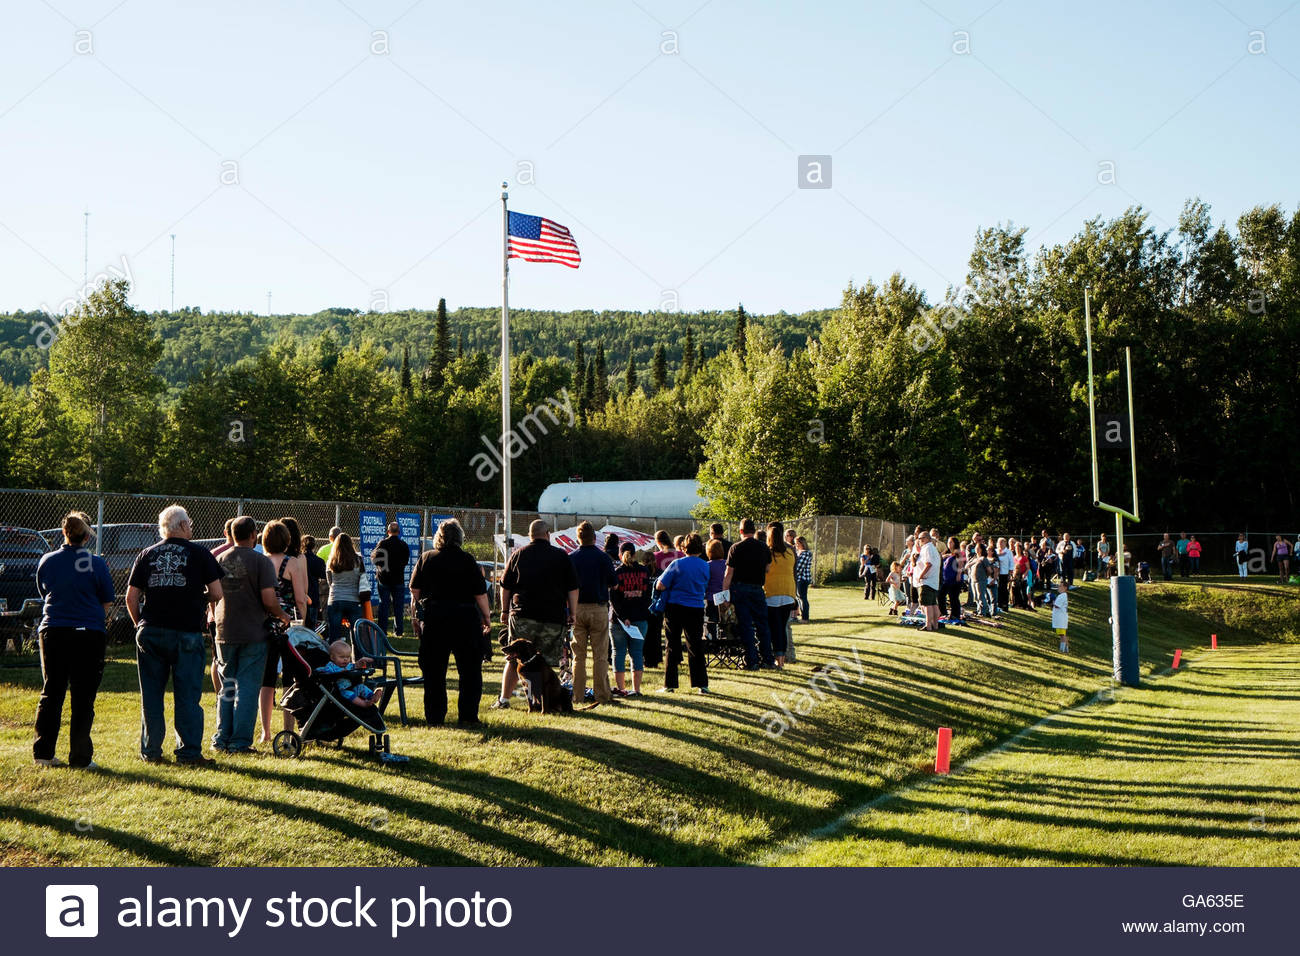 People gather for national anthem at Alumni Football Game, Cook County High School, Grand Marais, MN, on 4th of - Stock Image